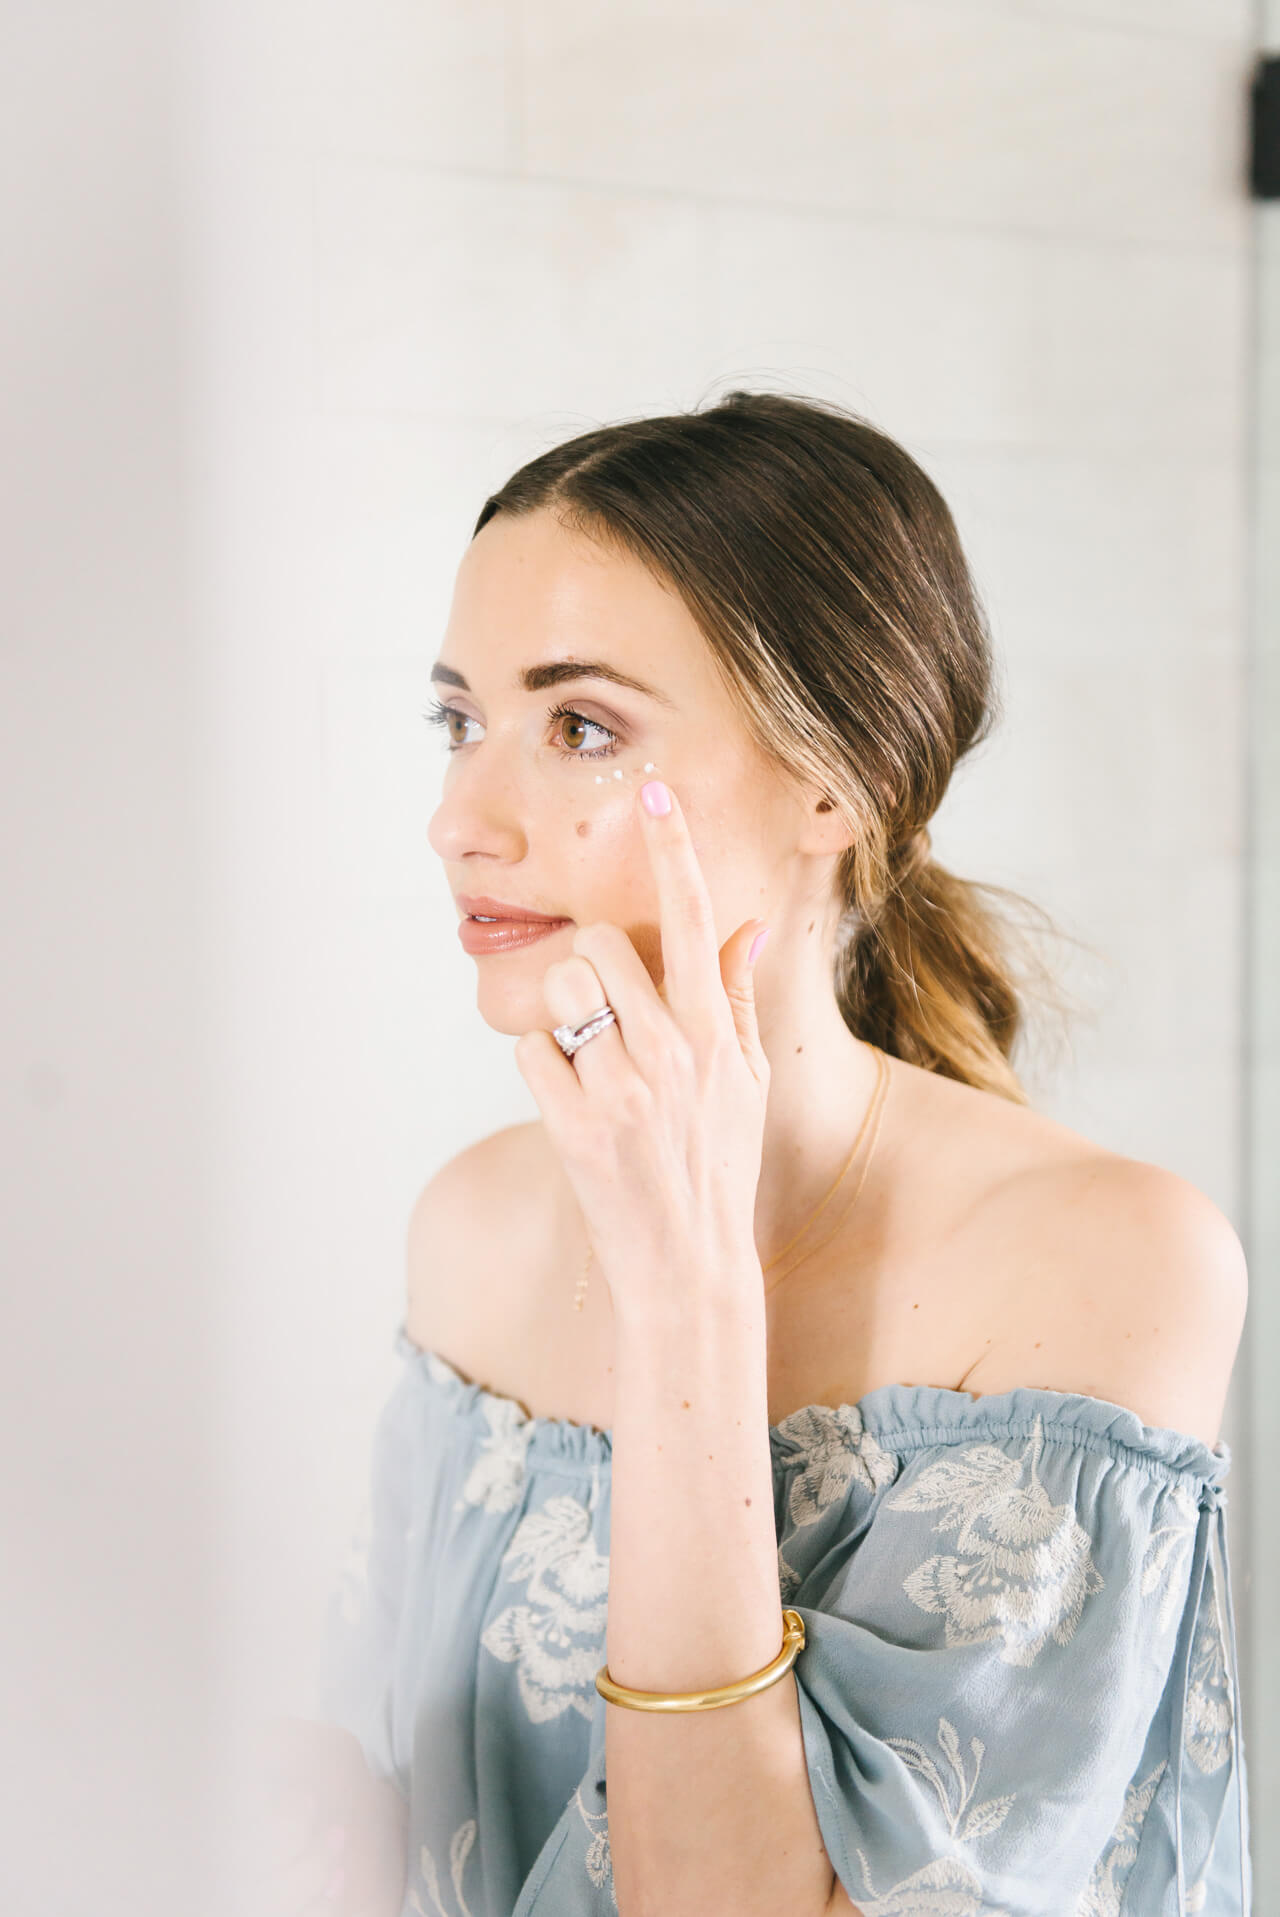 importance of focusing on skincare in your 20s